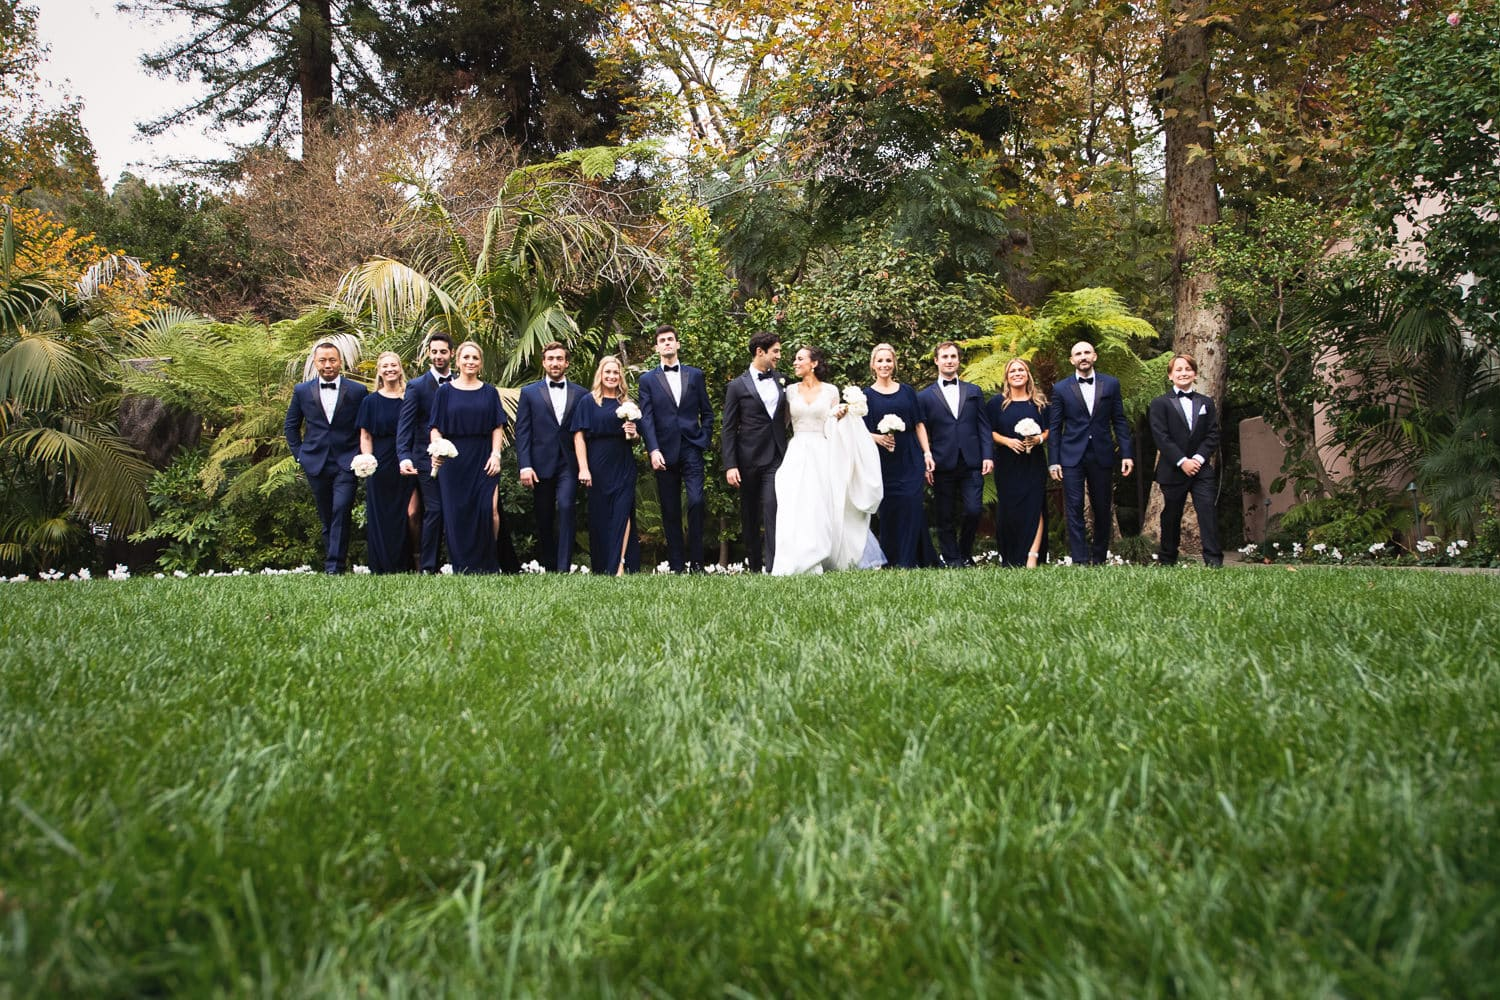 Bridal party inspiration on the Hotel Bel-Air lawn